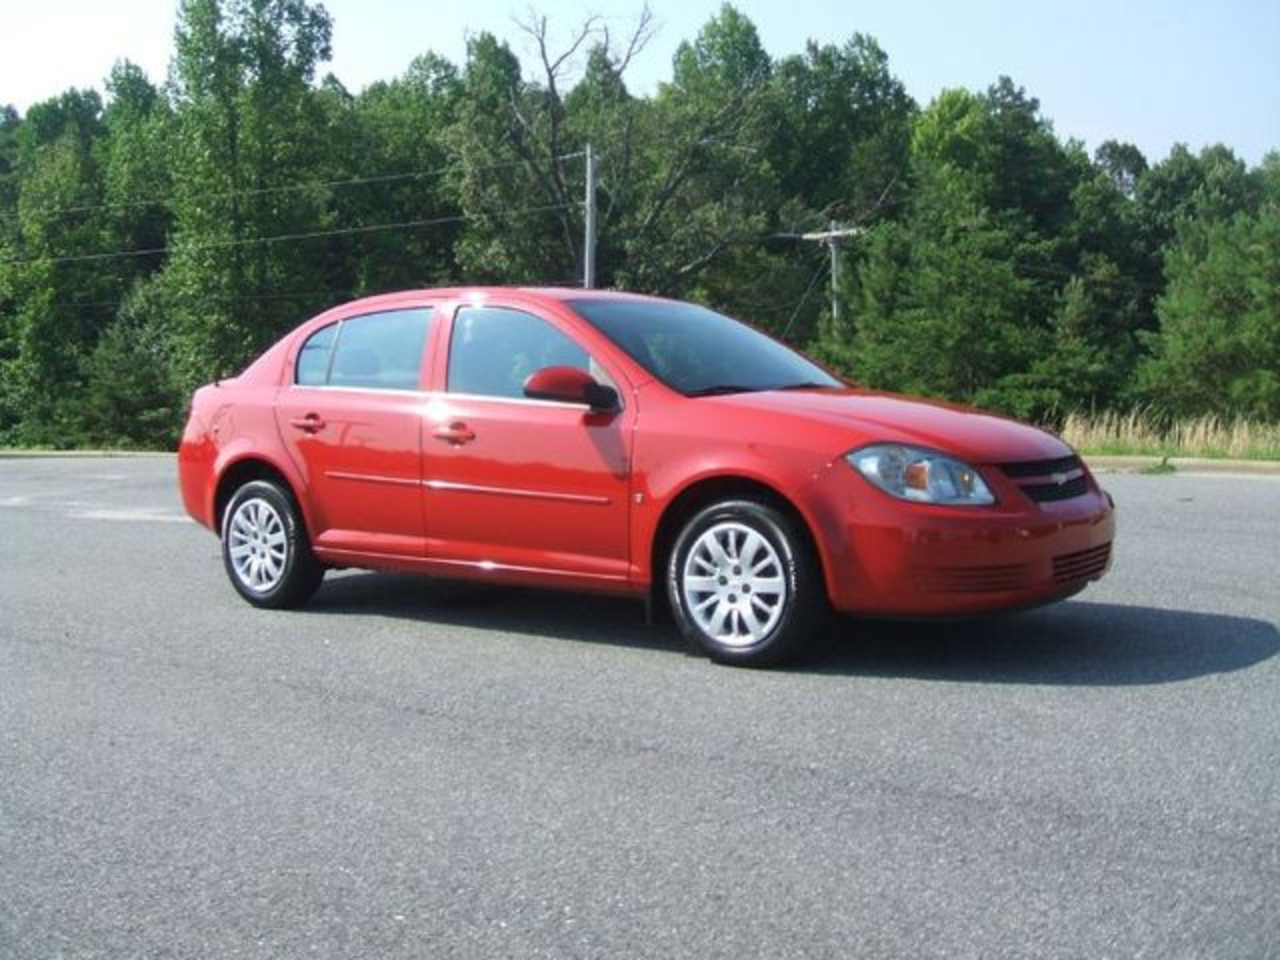 Used 2009 Chevrolet Cobalt LT in Asheboro, Greensboro, Winston ...